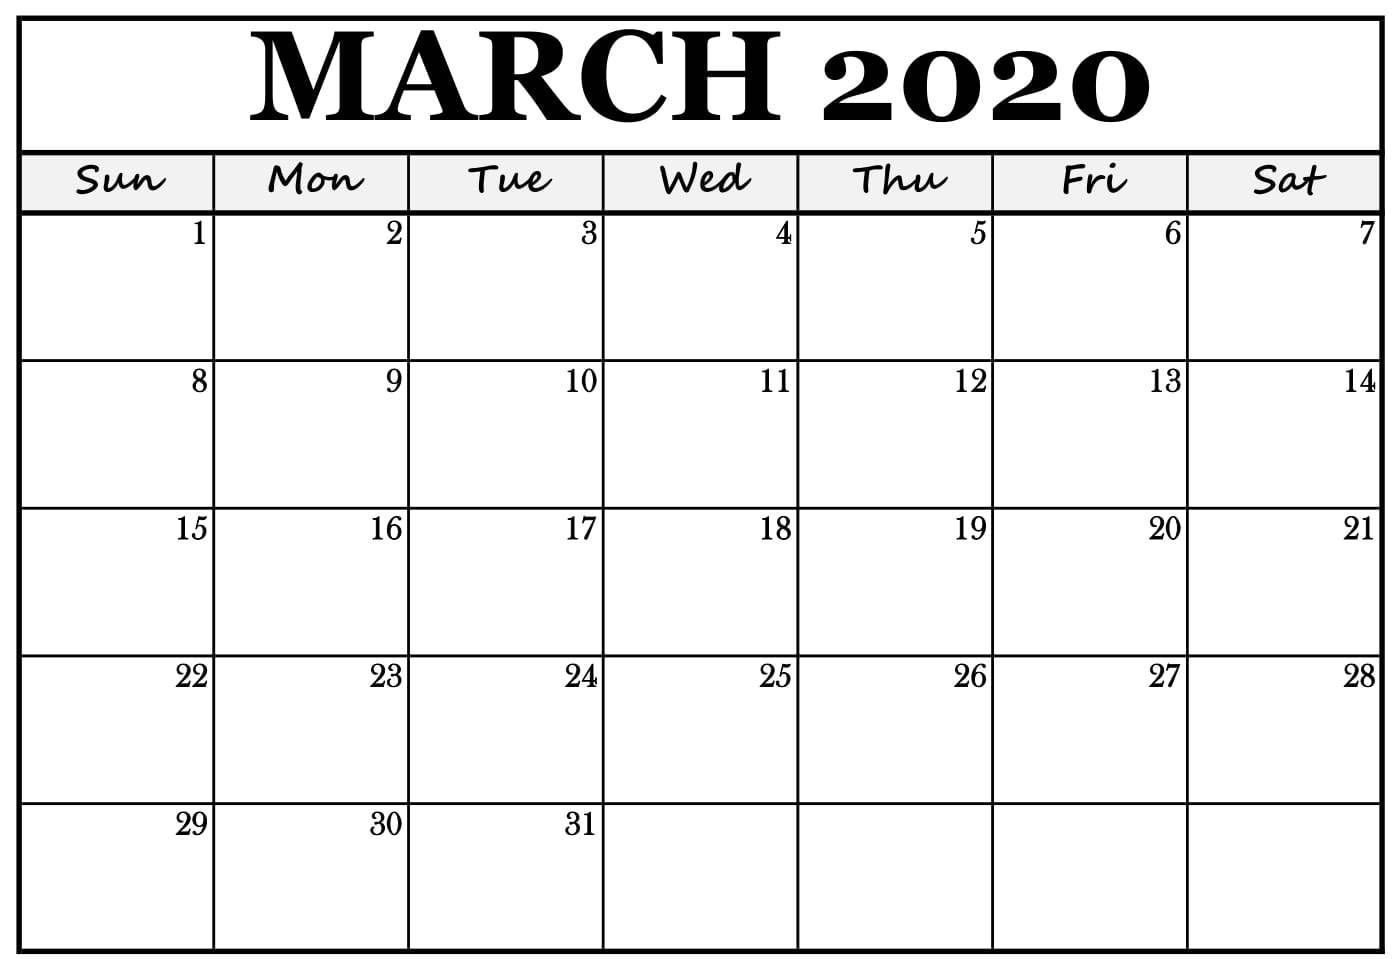 000 Impressive Calendar Template 2020 Word High Def  April Monthly Microsoft With Holiday FebruaryFull